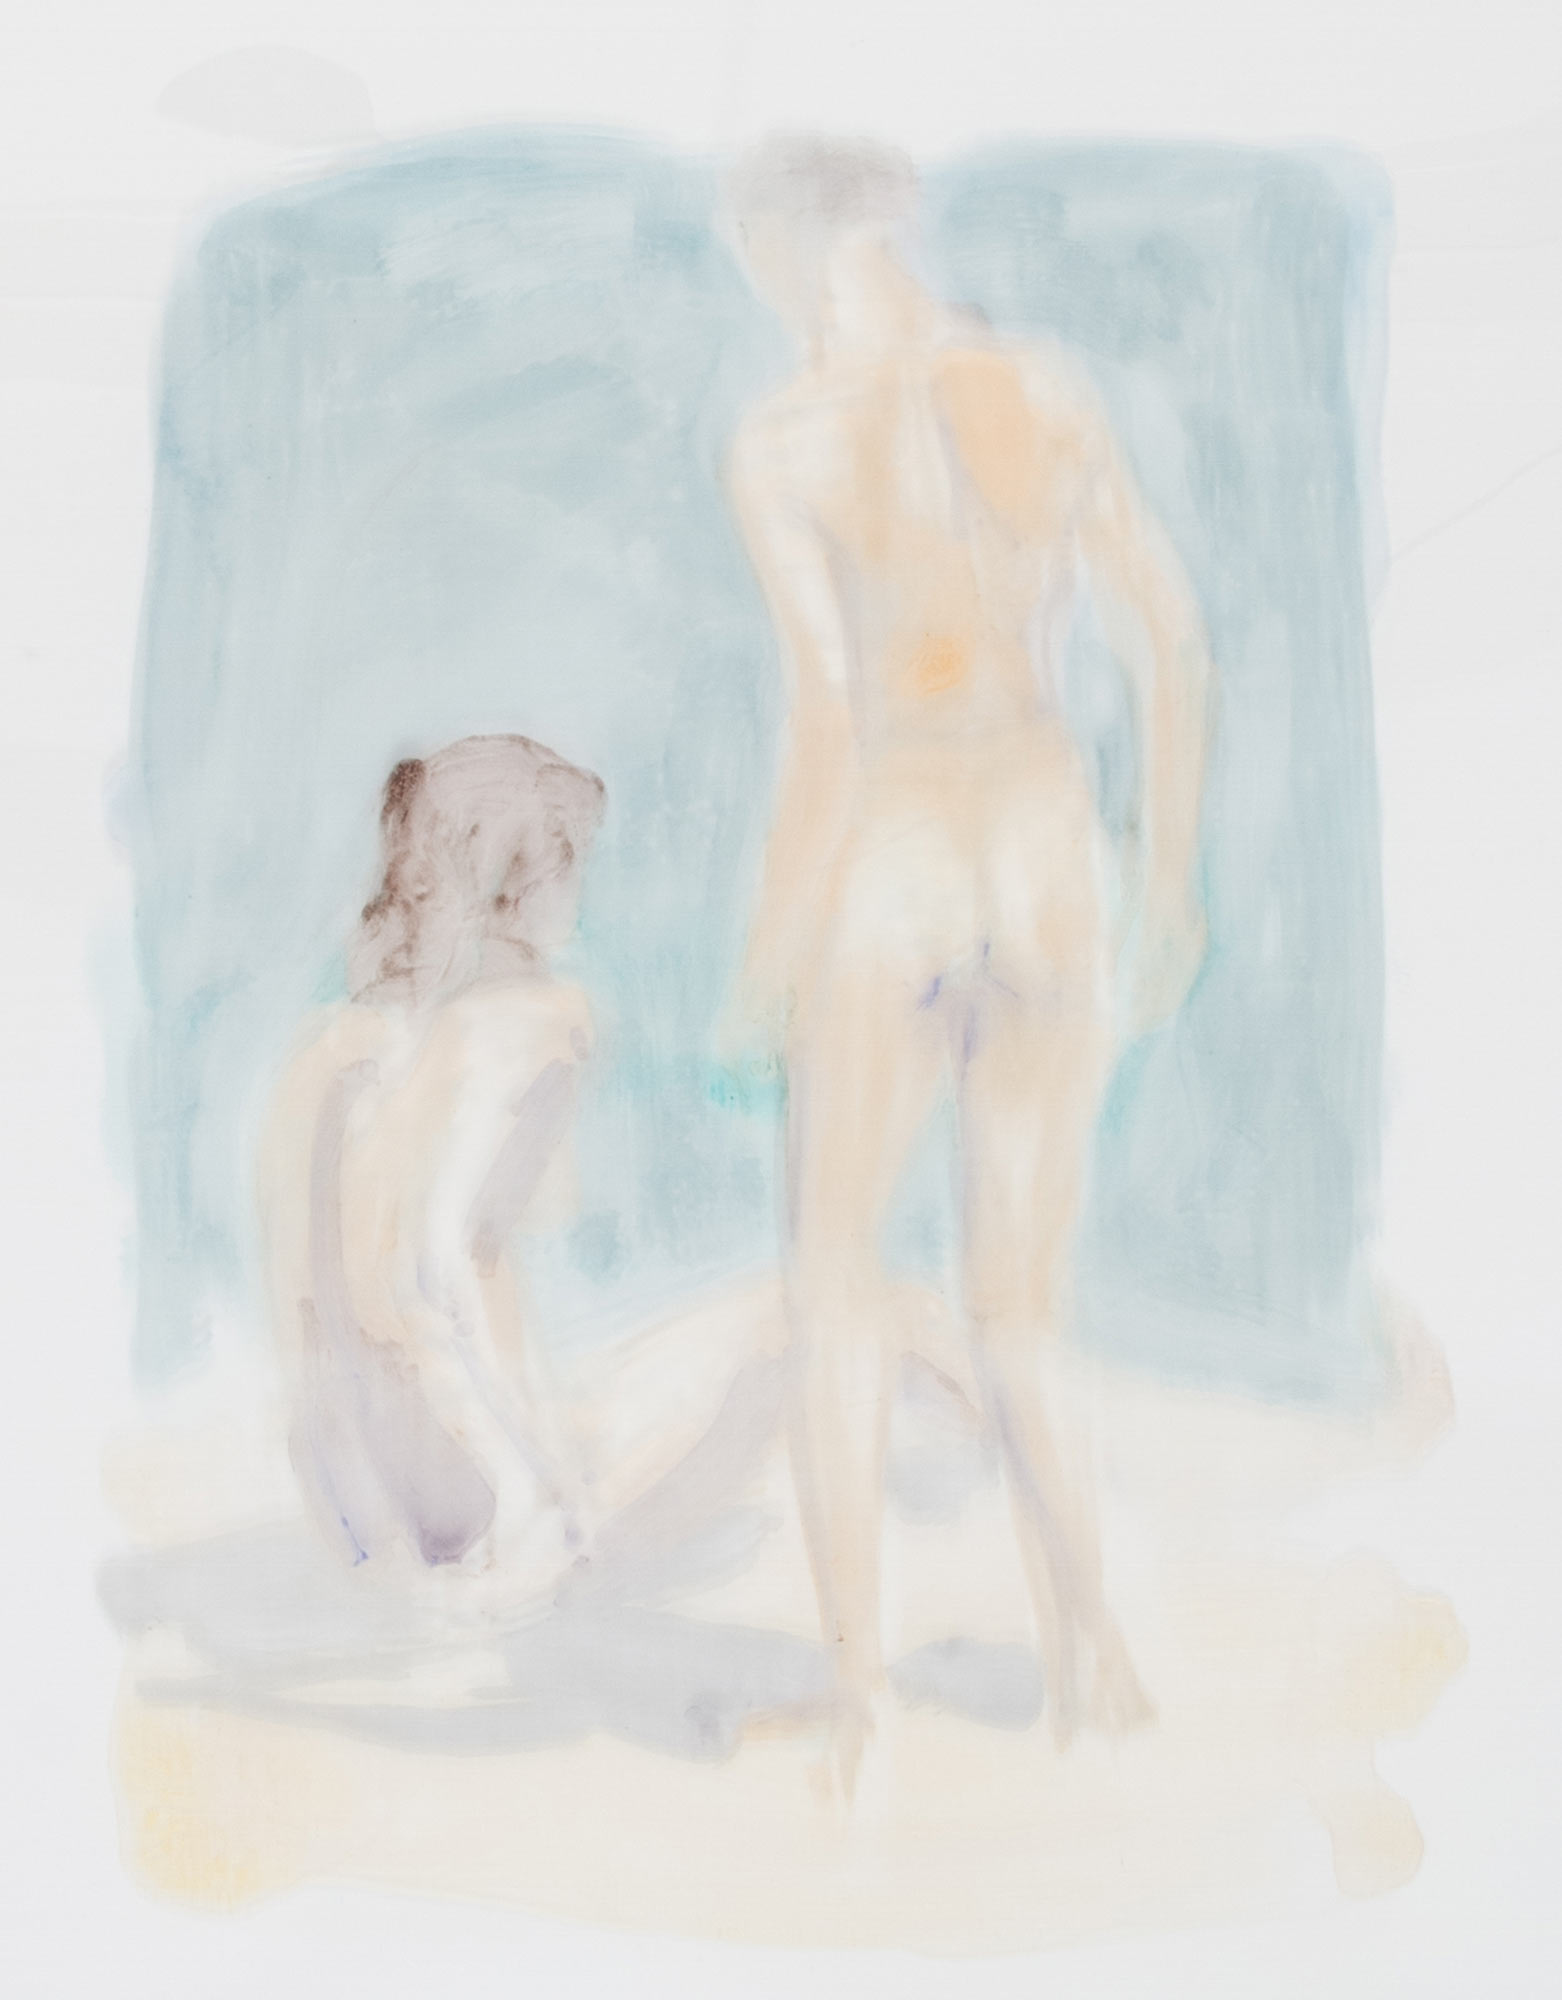 Scenes and Sequences: Two Figures on a Beach, 1986.